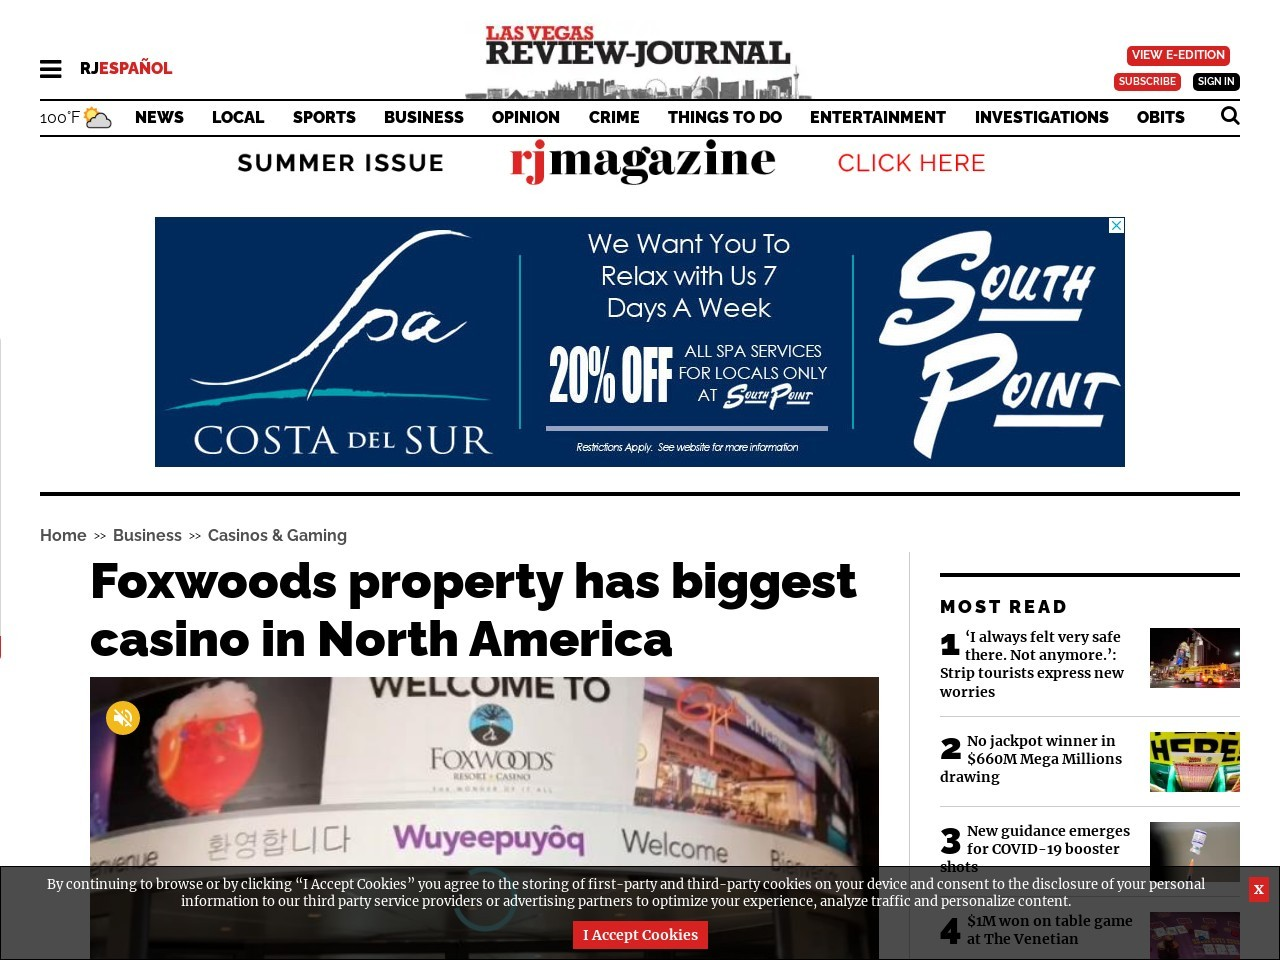 Foxwoods property has biggest casino in North America